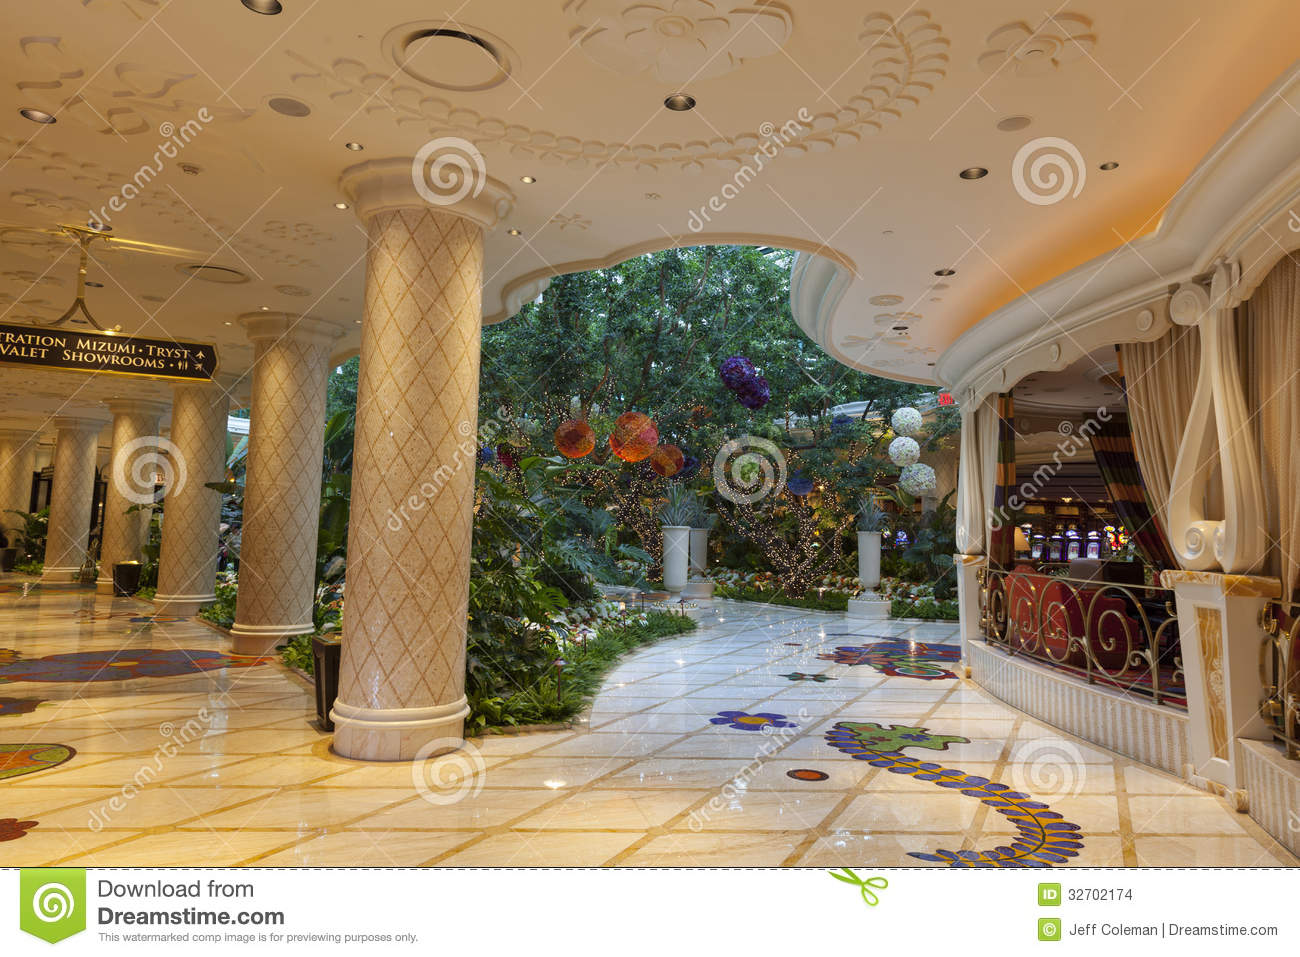 Wynn hotel interior in las vegas nv on august 02 2013 editorial stock image image 32702174 Interior decorators las vegas